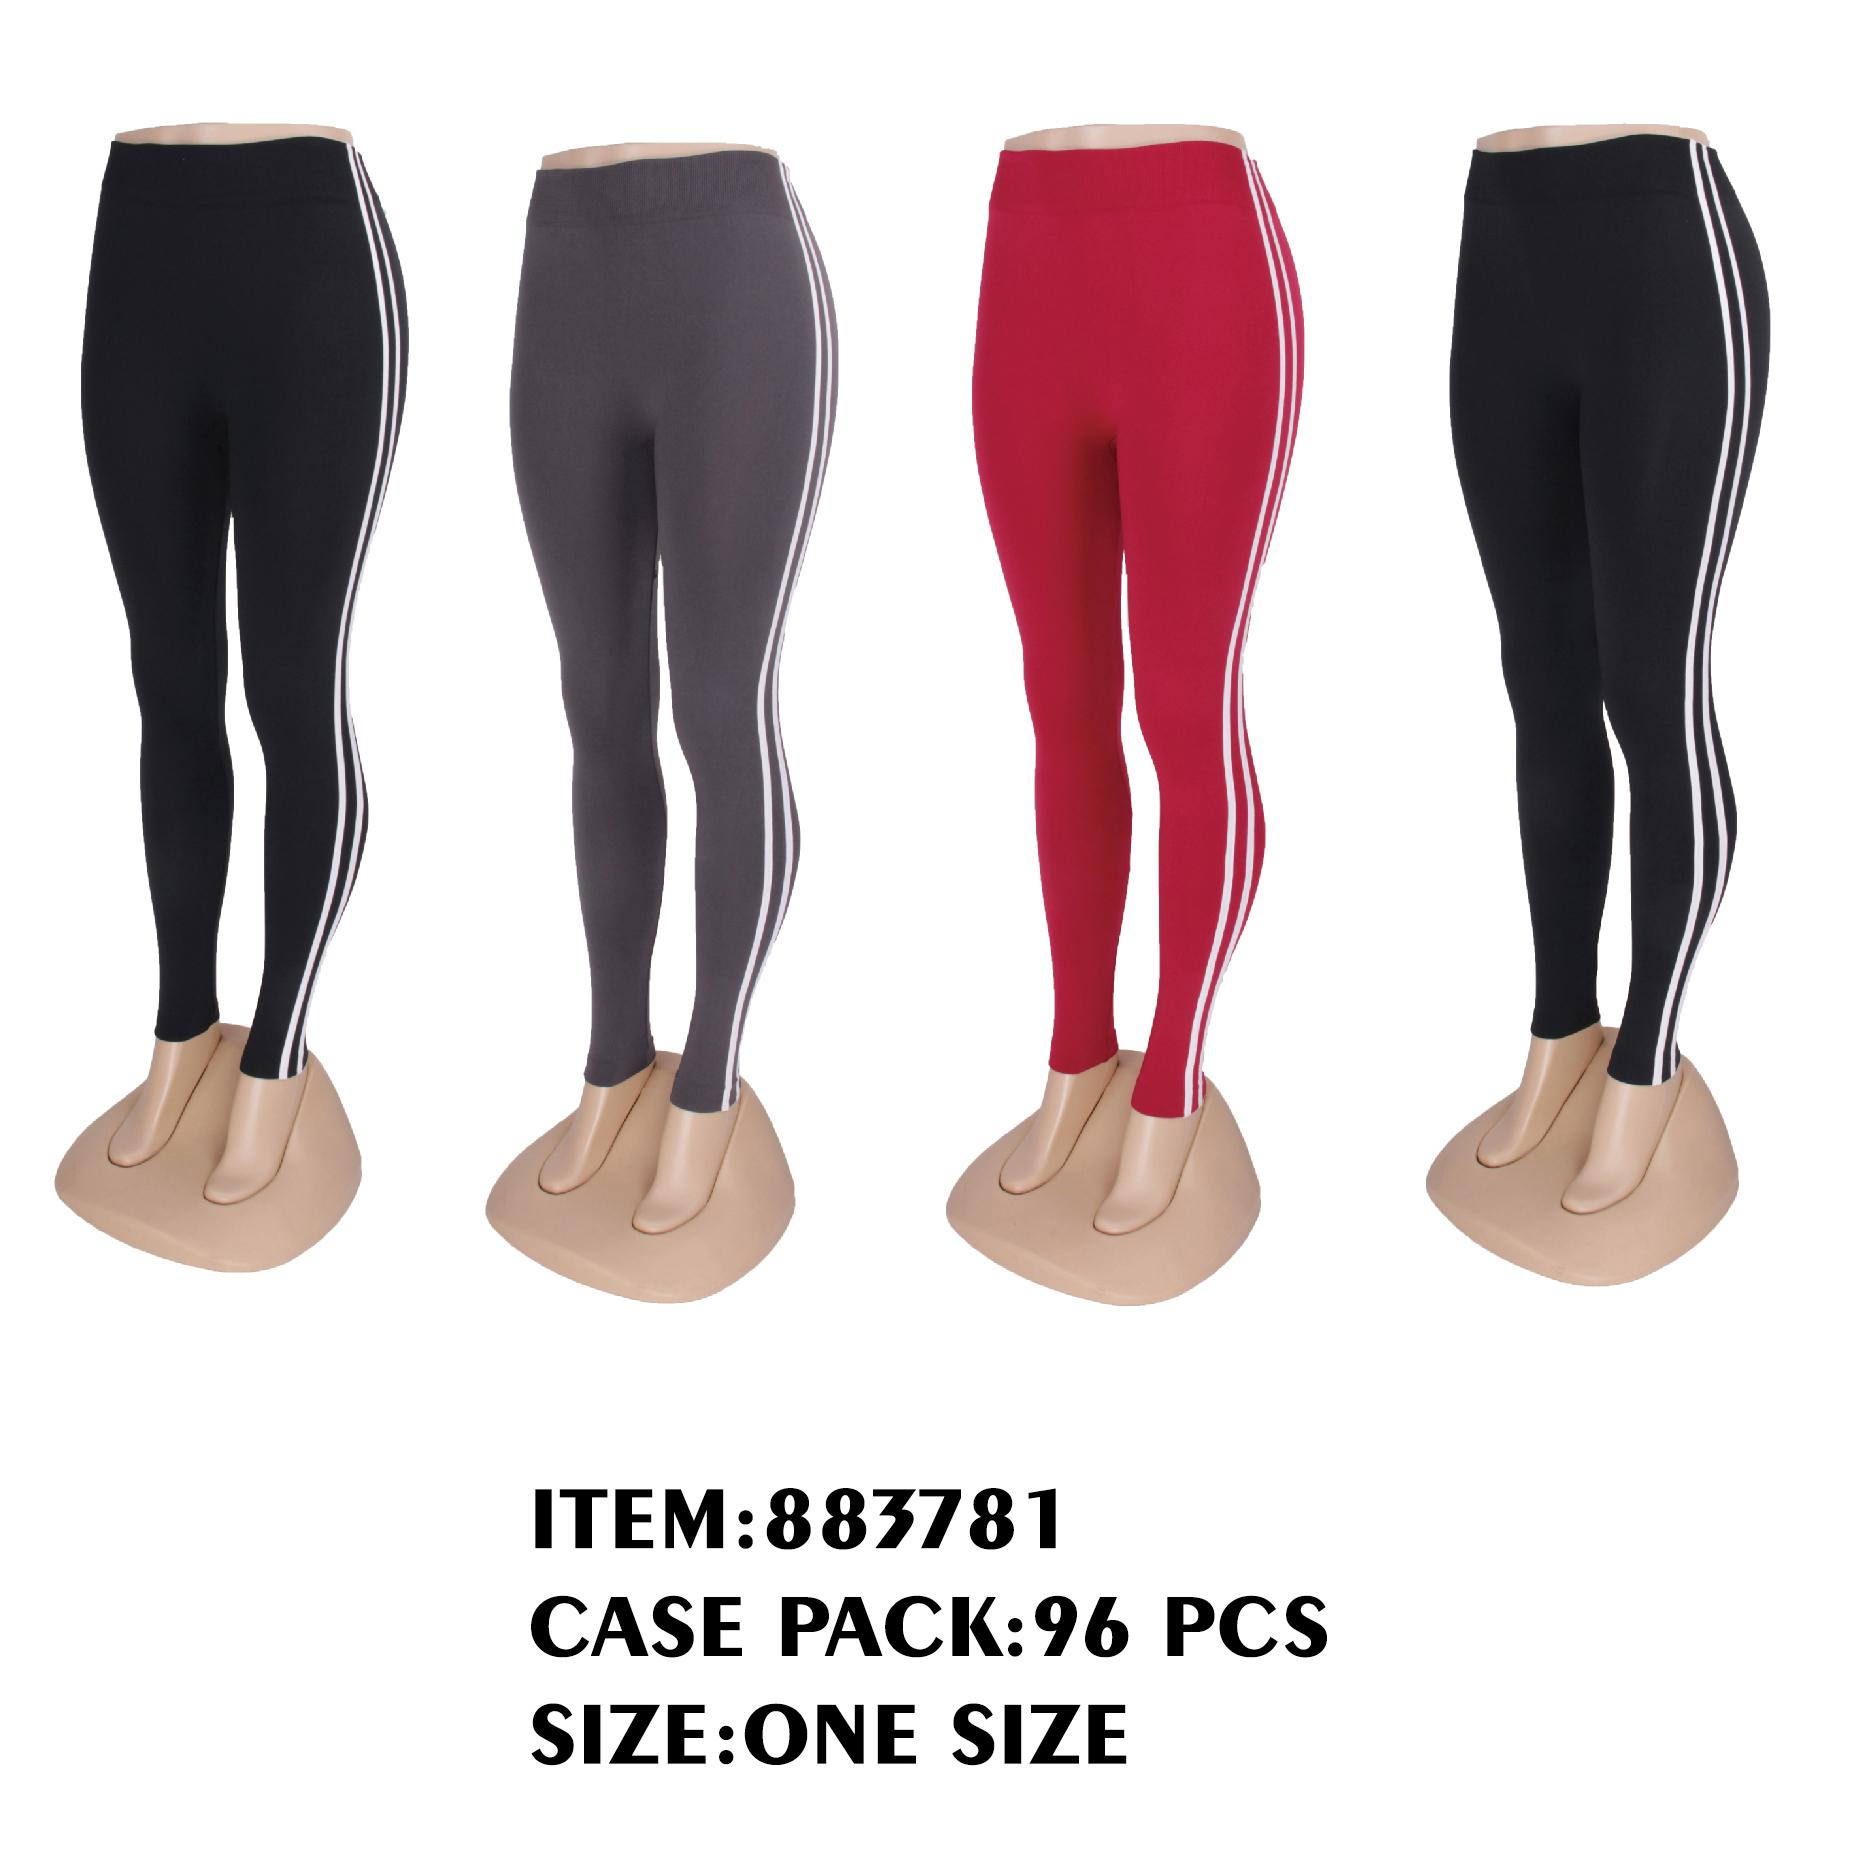 LADIES LEGGING 96/CTN